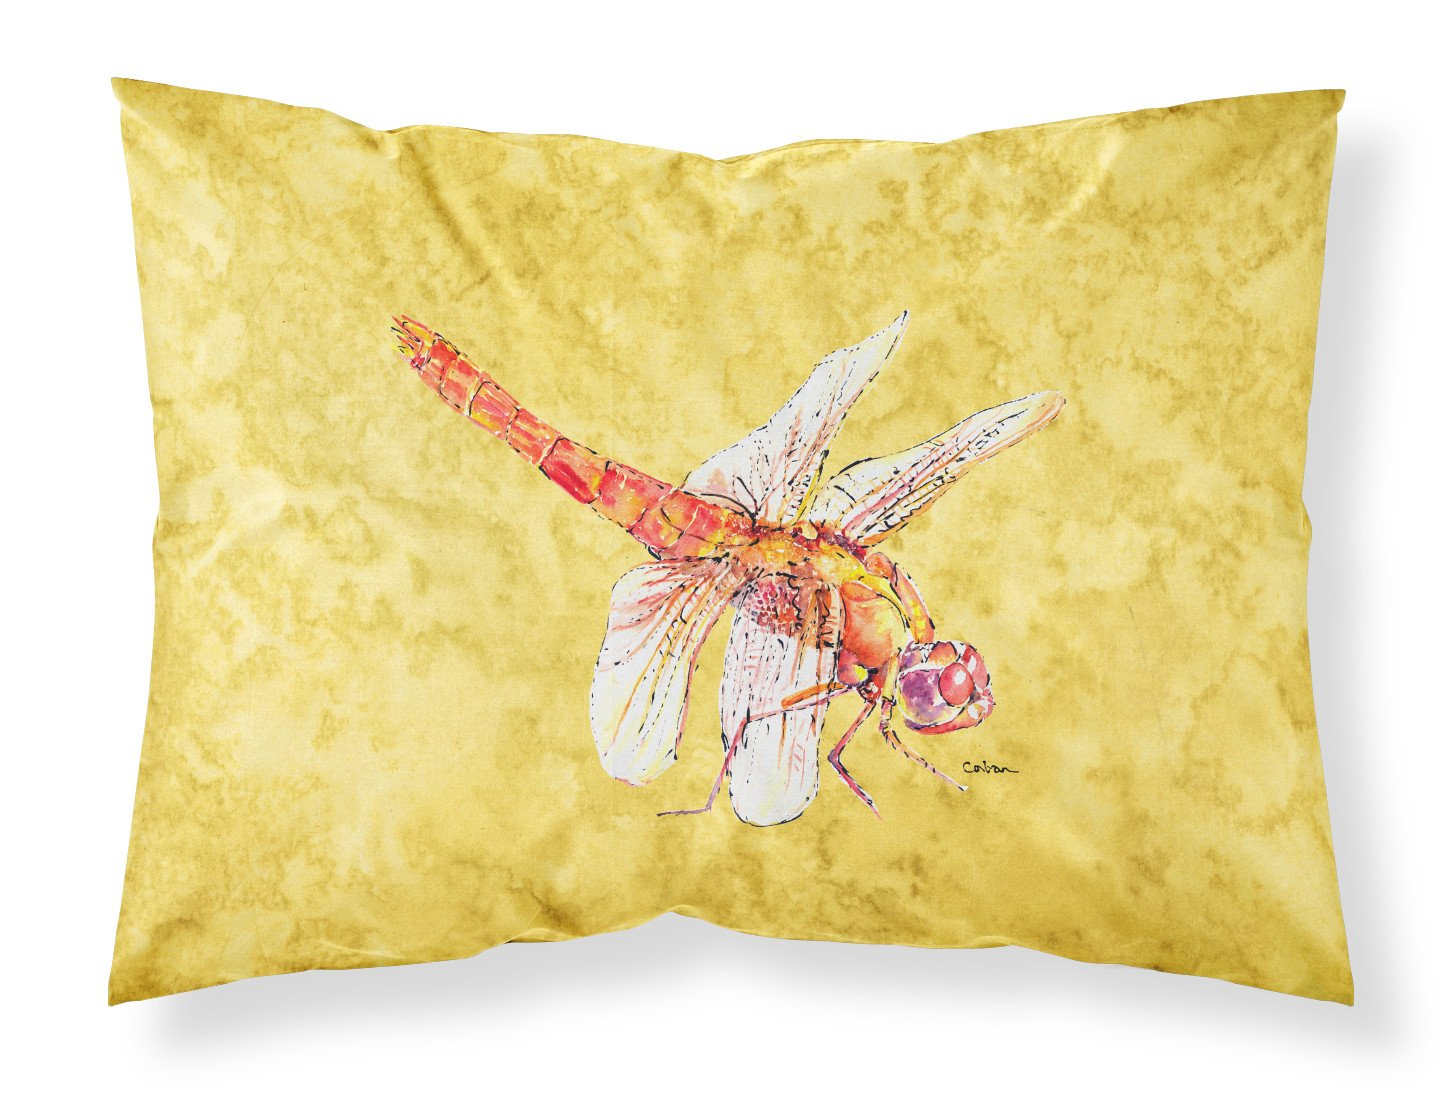 Buy this Dragonfly on Yellow Moisture wicking Fabric standard pillowcase